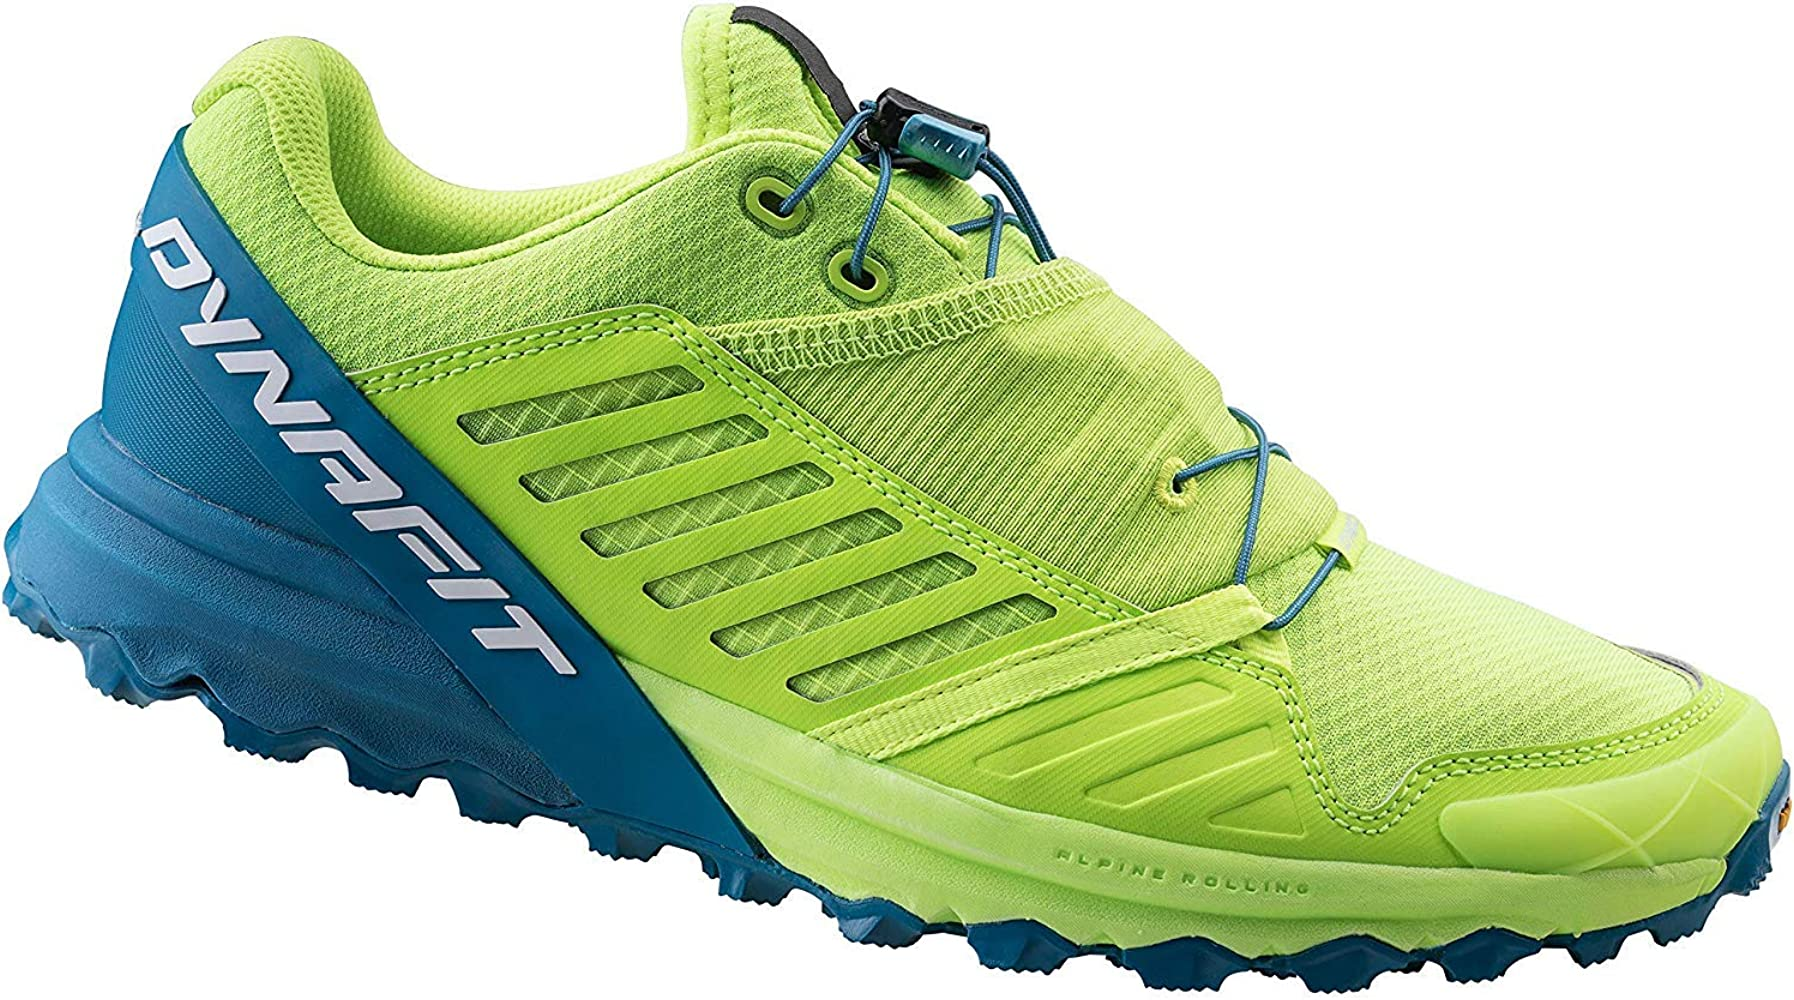 Dynafit Zapatilla Alpine Pro Fluo Yellow/Blue: Amazon.es: Deportes y aire libre